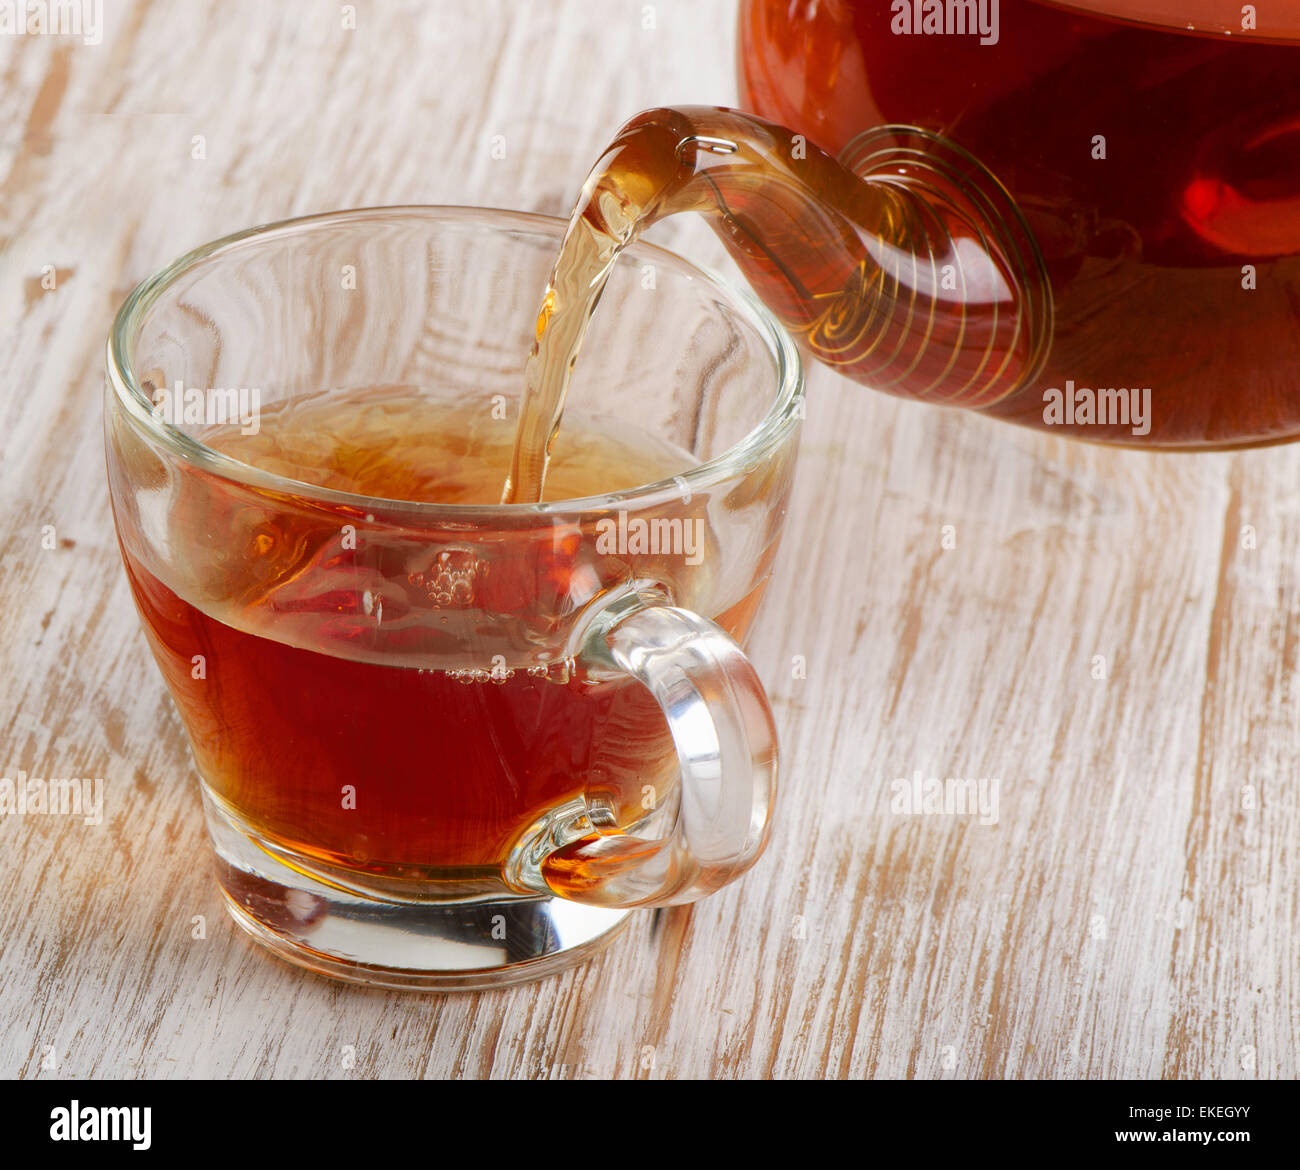 Tea pouring into glass cup. Selective focus - Stock Image